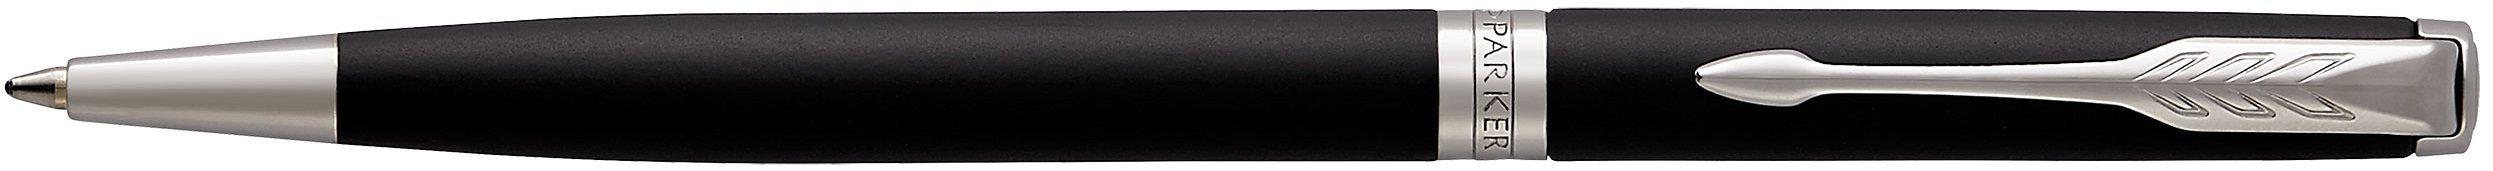 Шариковая ручка Parker Sonnet Core K429 Slim, Matte Black CT